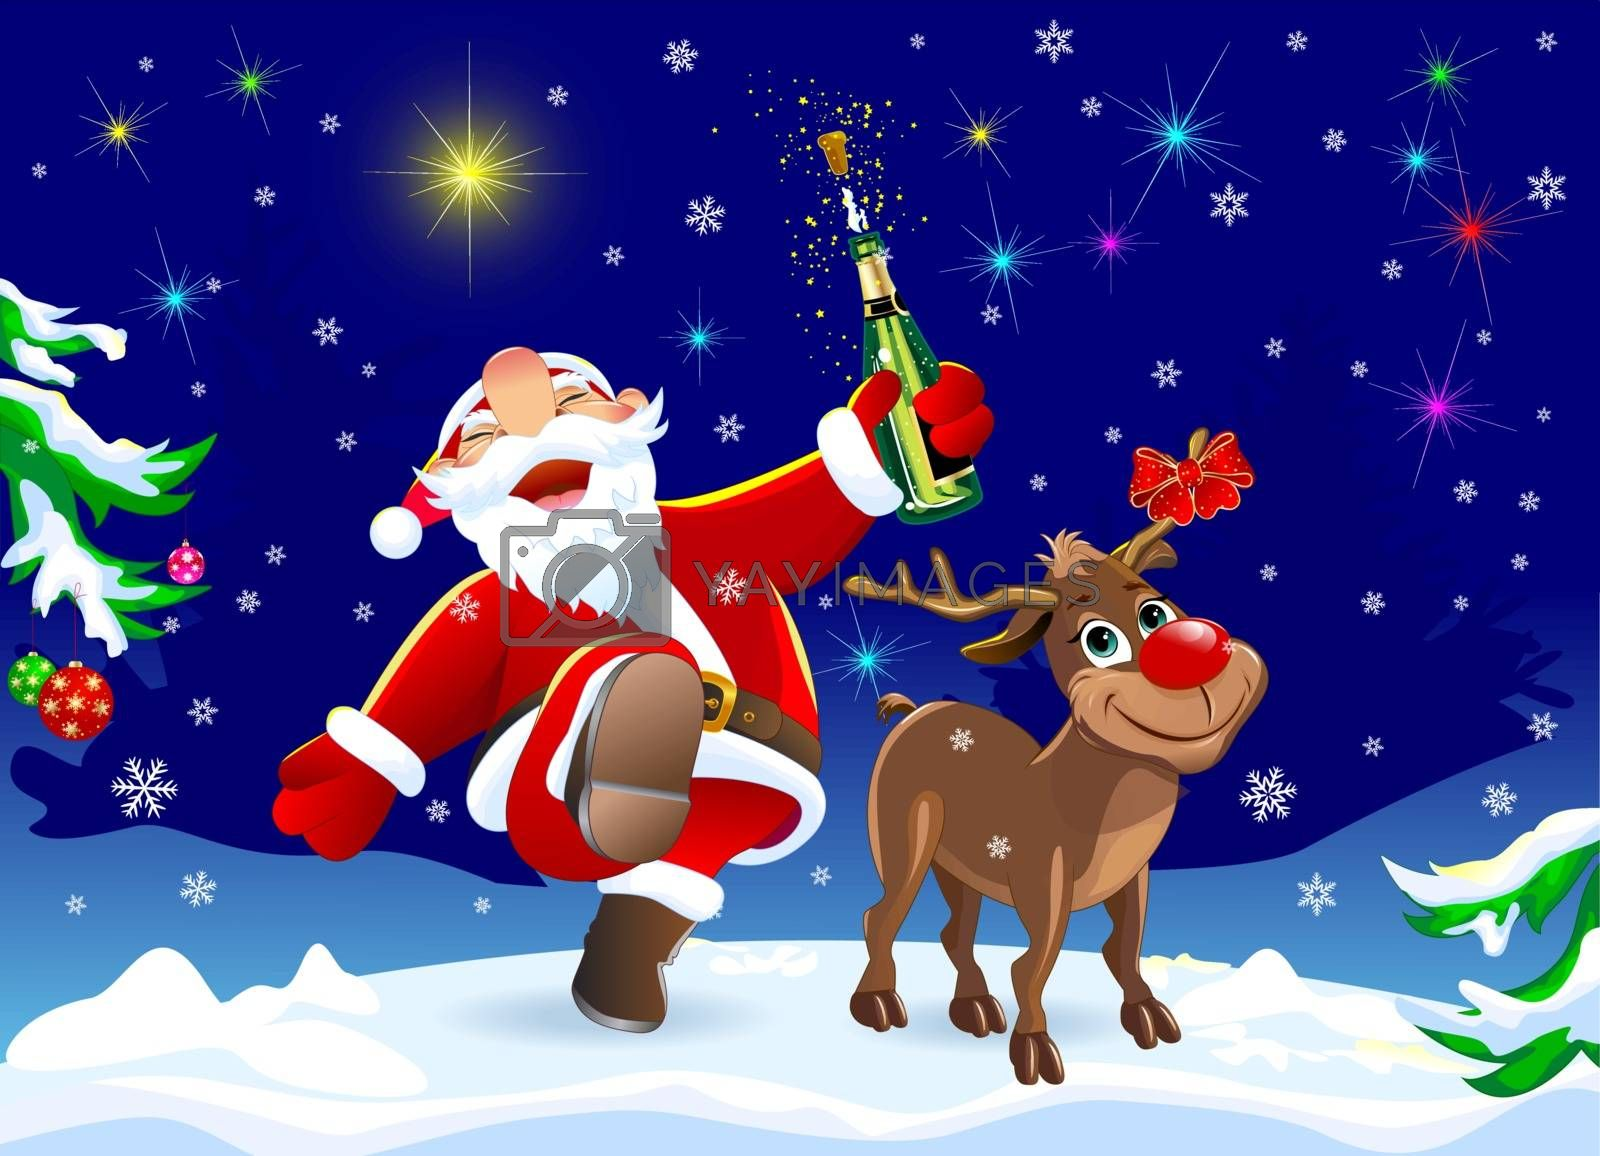 Santa Claus and deer in the winter forest. Merry Santa Claus and deer rejoice on Christmas Eve. Santa with a bottle of champagne. The radiance of the Christmas star.